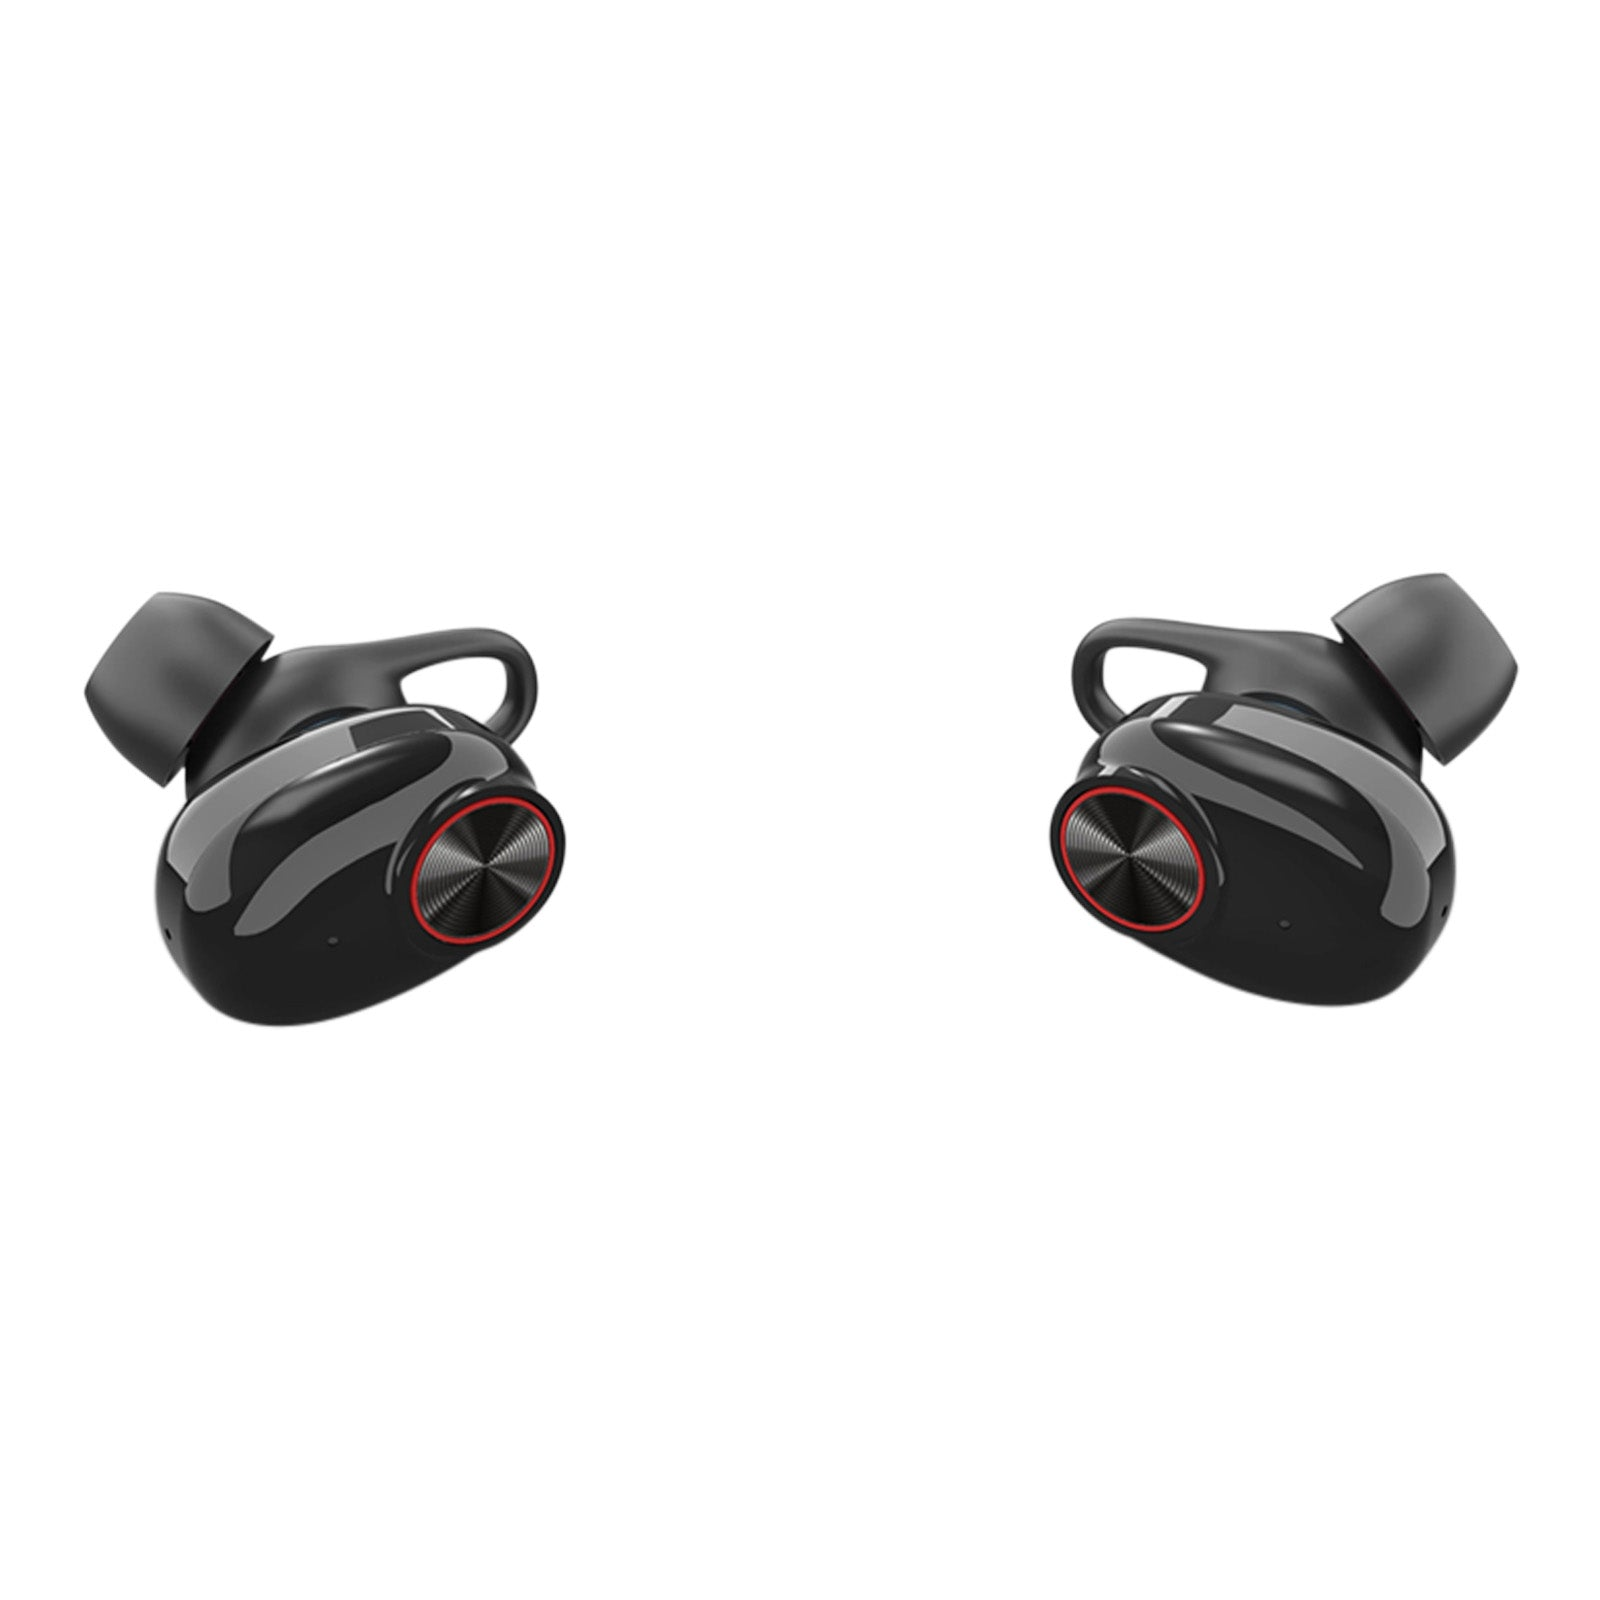 Wireless Earbuds Bluetooth V5.0 In-ear Stereo Earphones